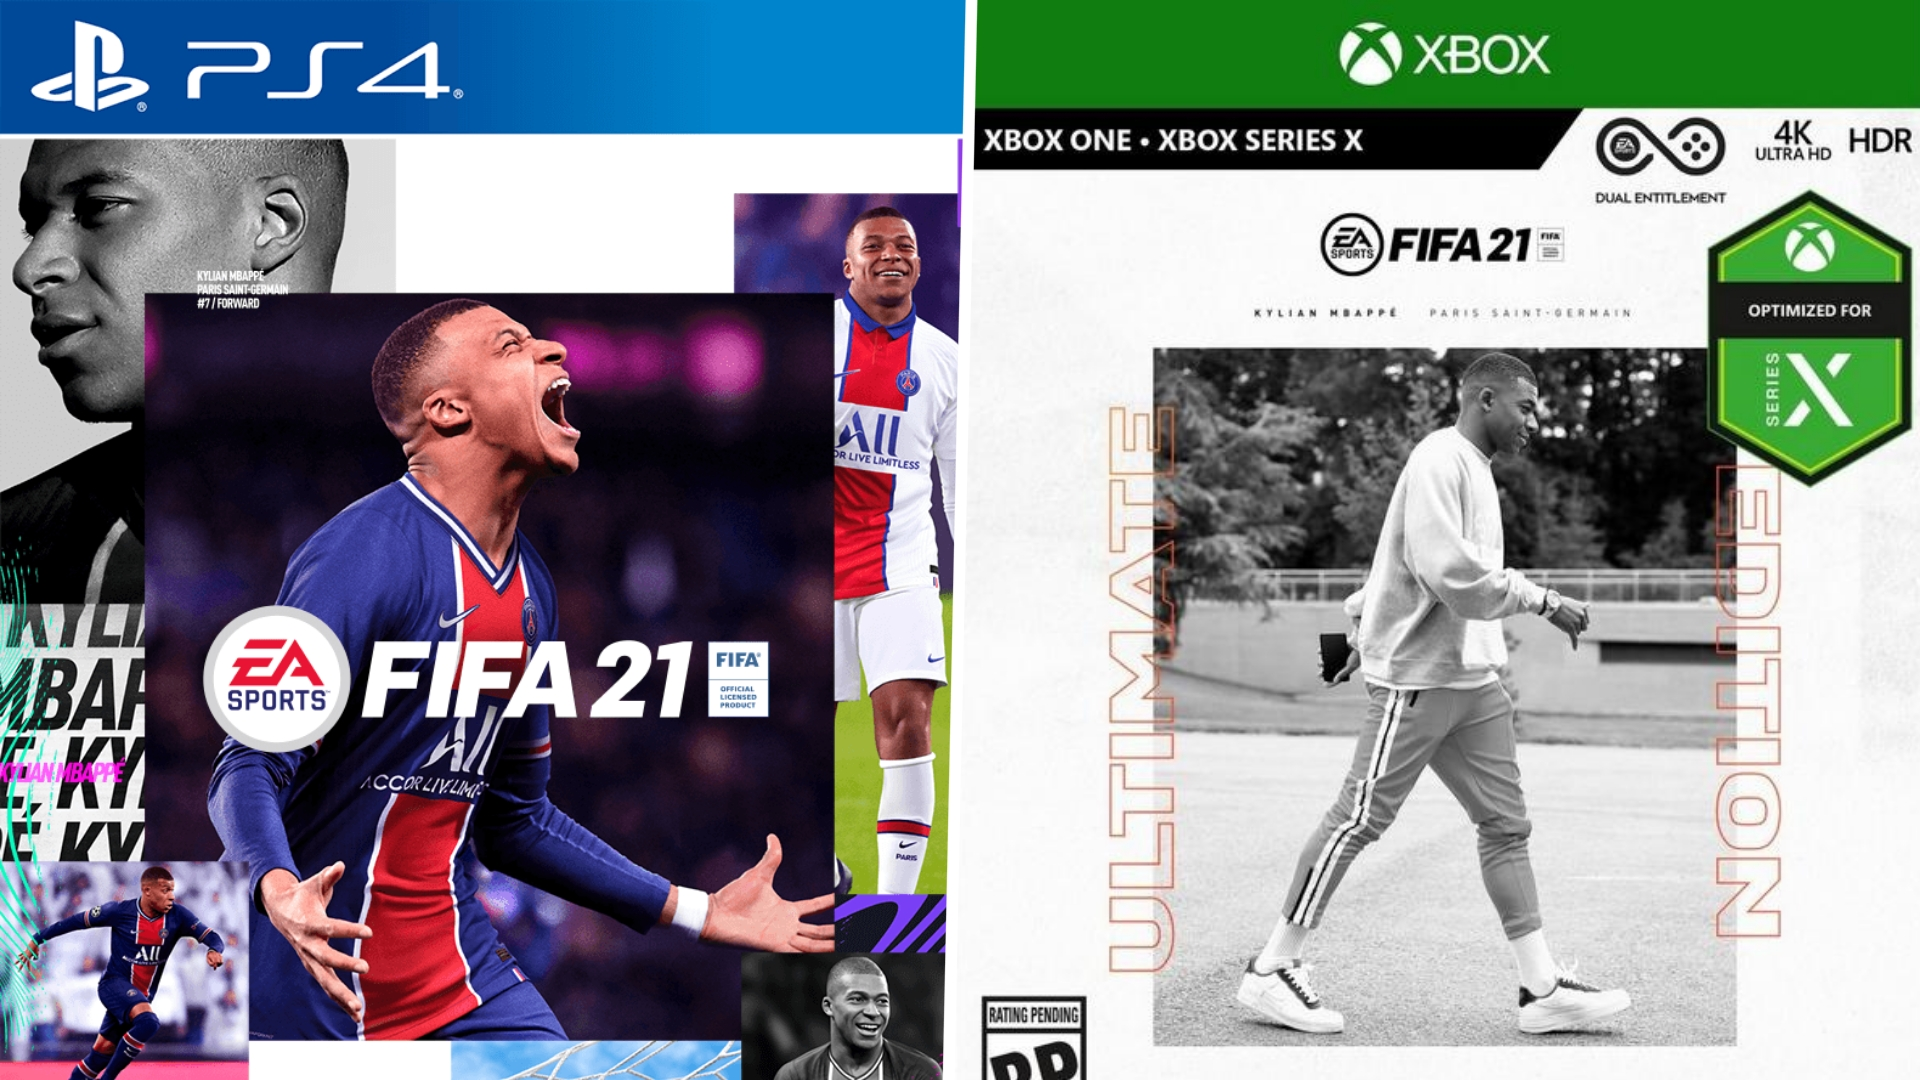 FIFA 21: How does the Dual Entitlement work between PS4 & PS5 and Xbox One  & Xbox Series X | Goal.com